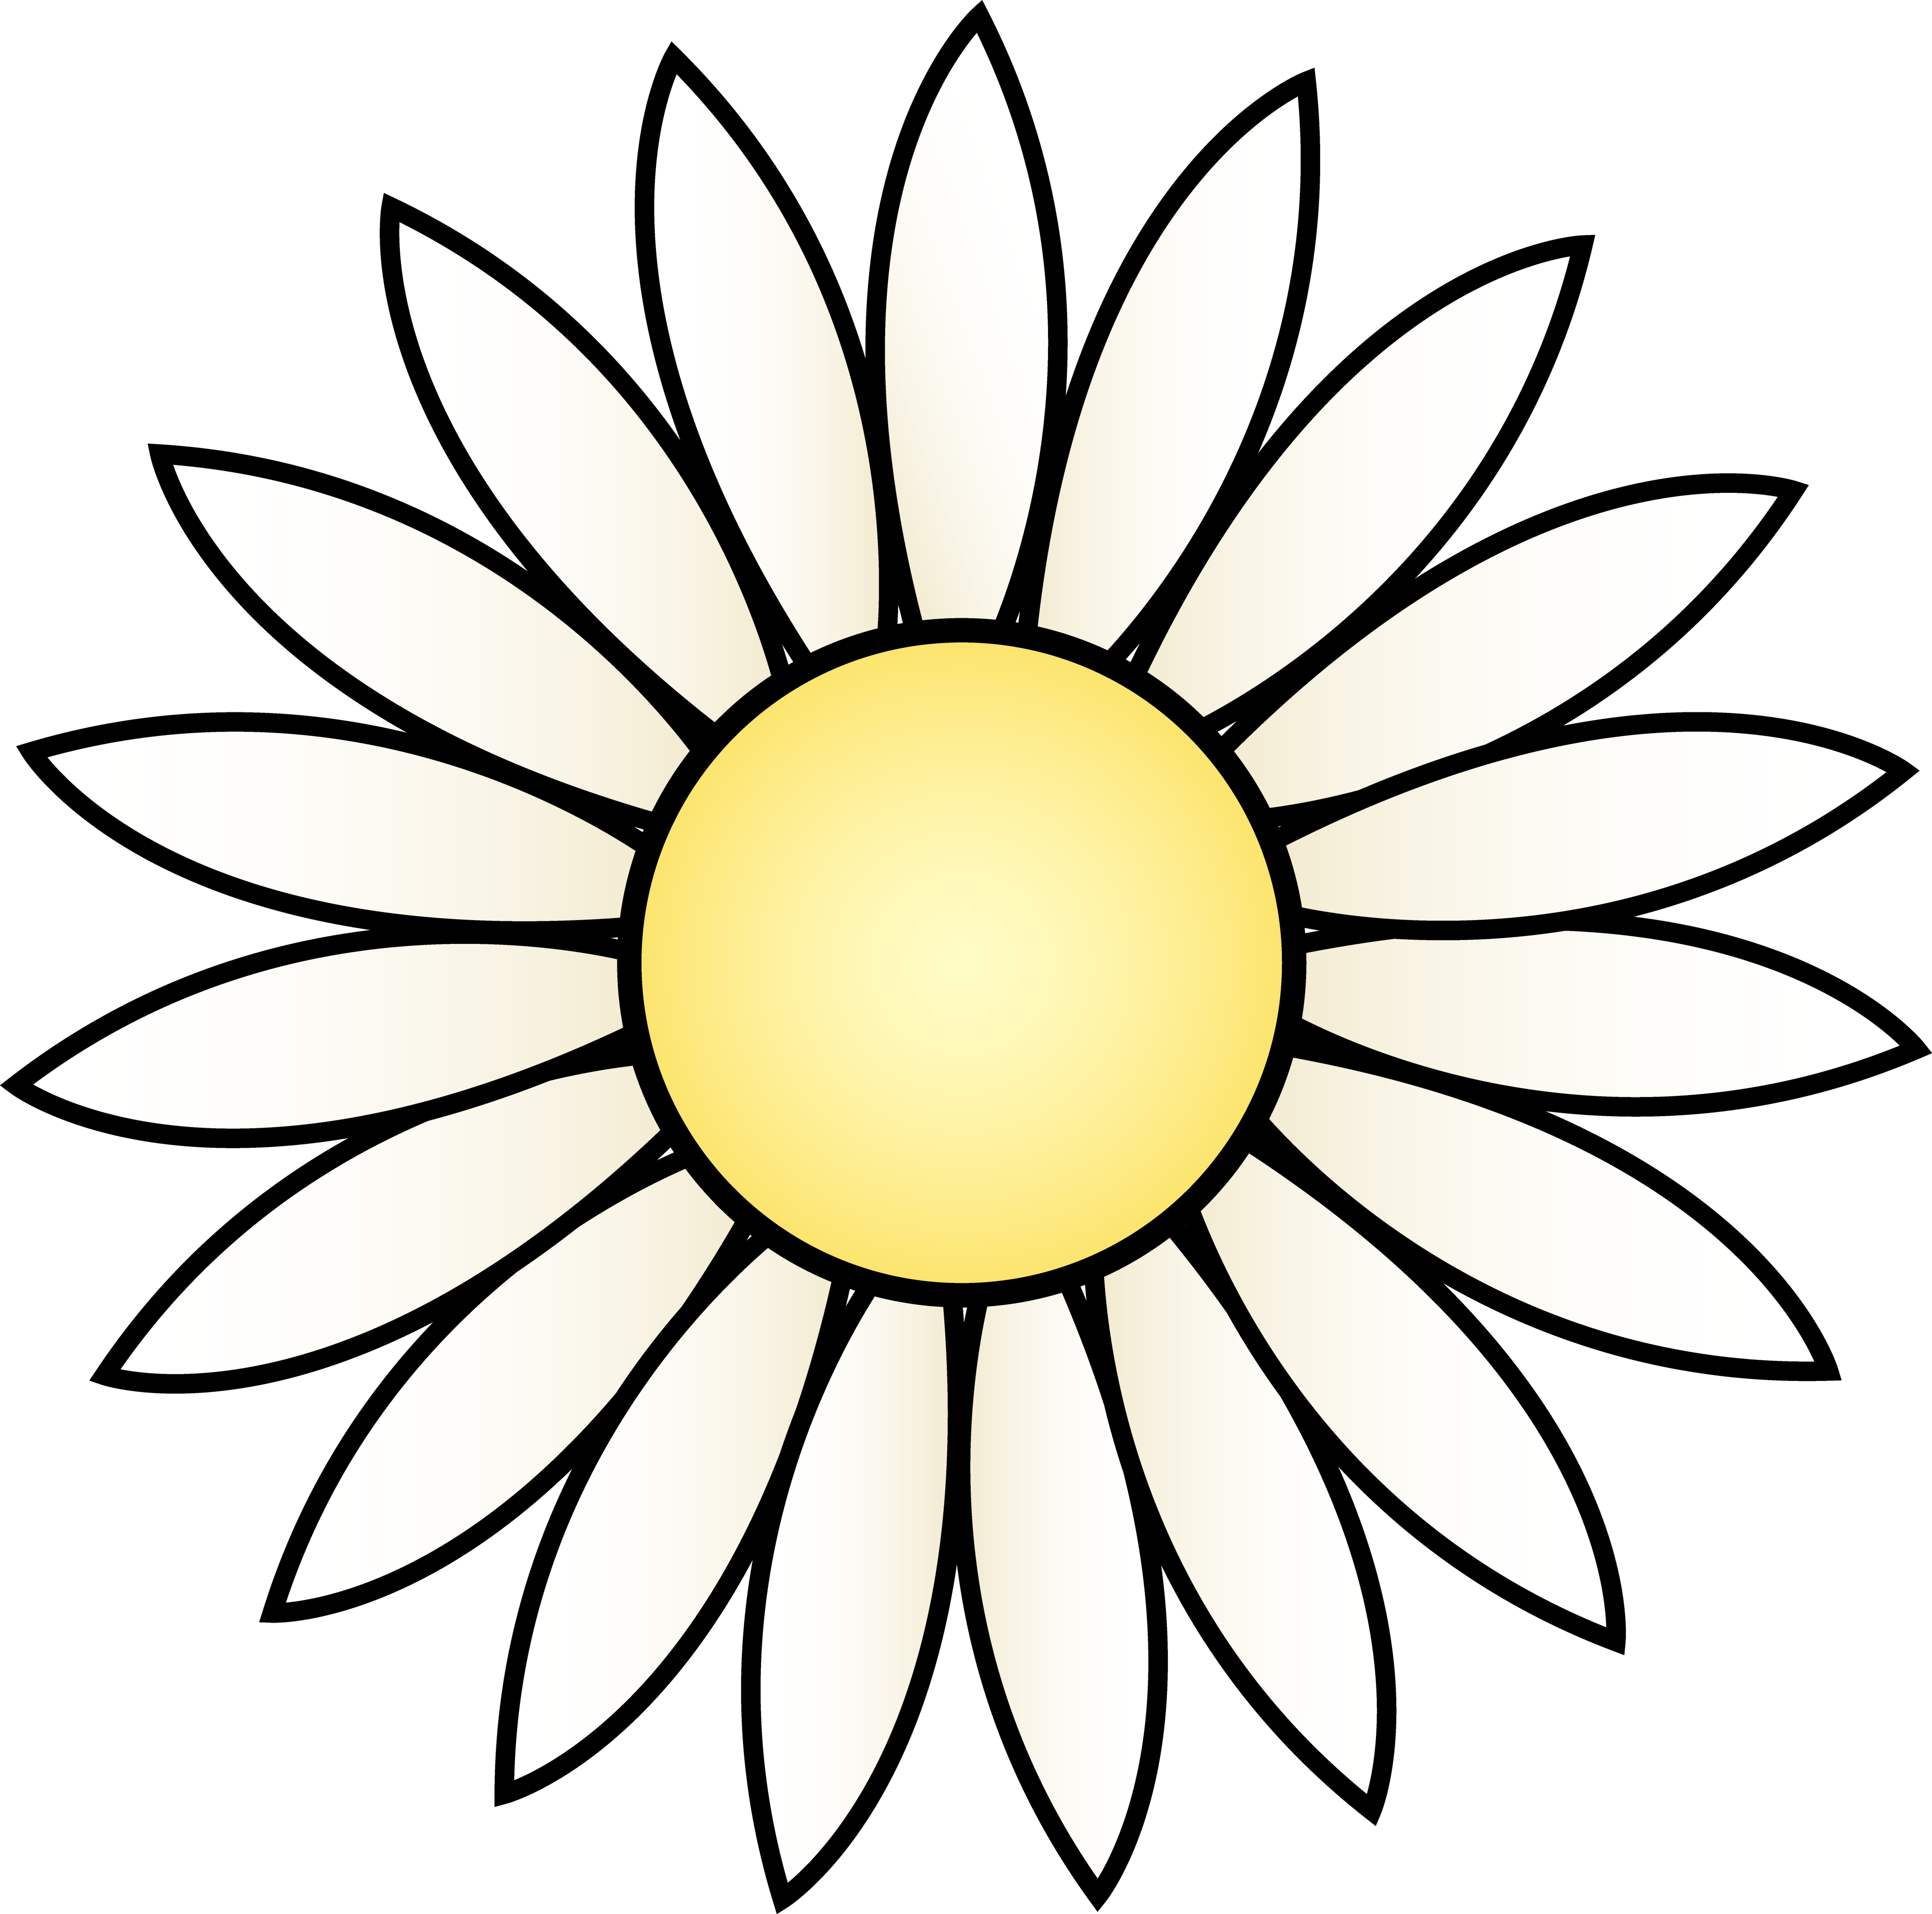 Free cliparts download clip. Daisy clipart transparent background vector library download